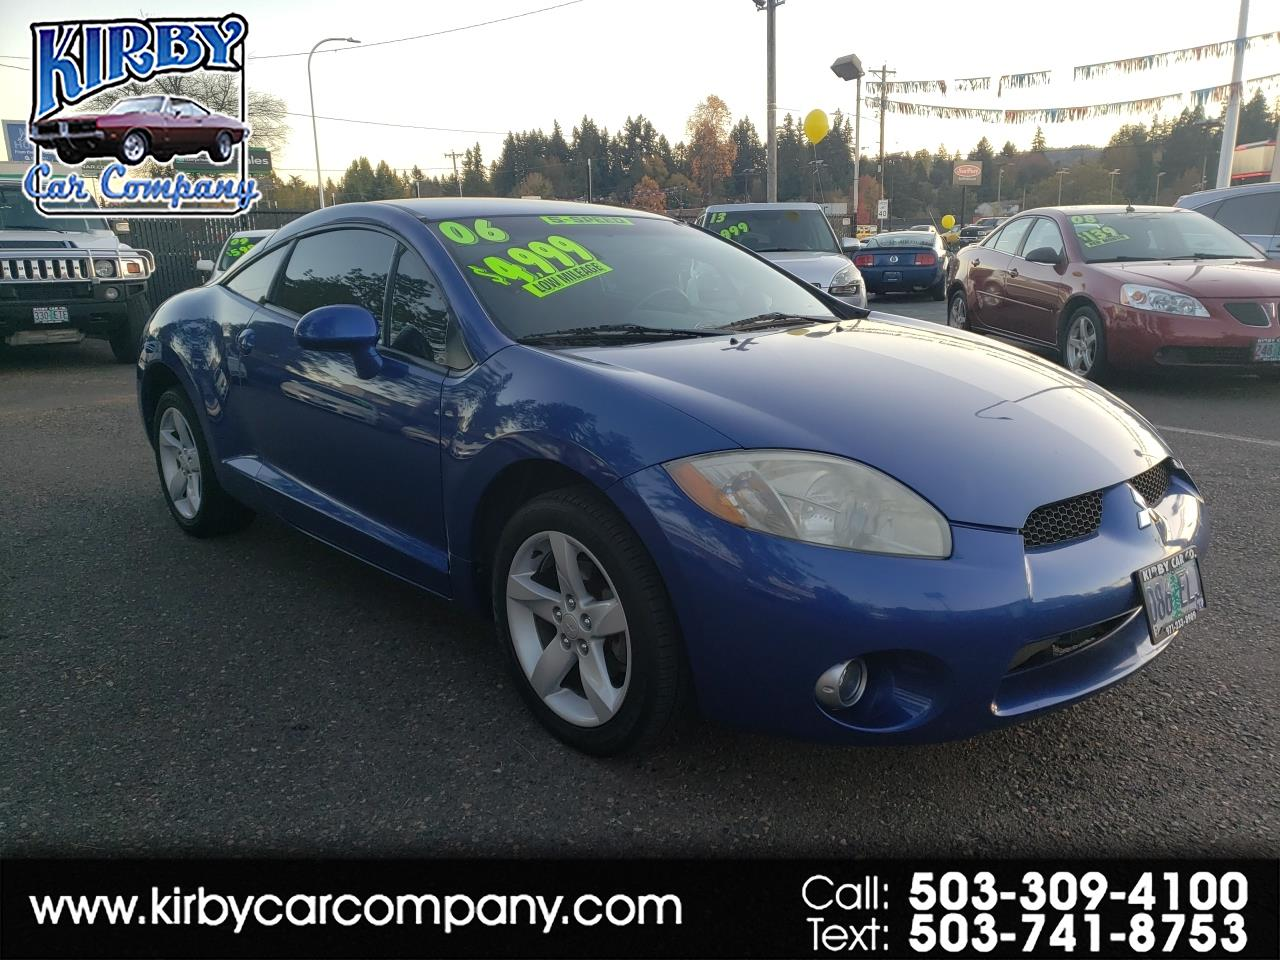 2006 Mitsubishi Eclipse 2dr Spyder GT 6-sp Manual LOW MILES!  HOT MAGS!  S